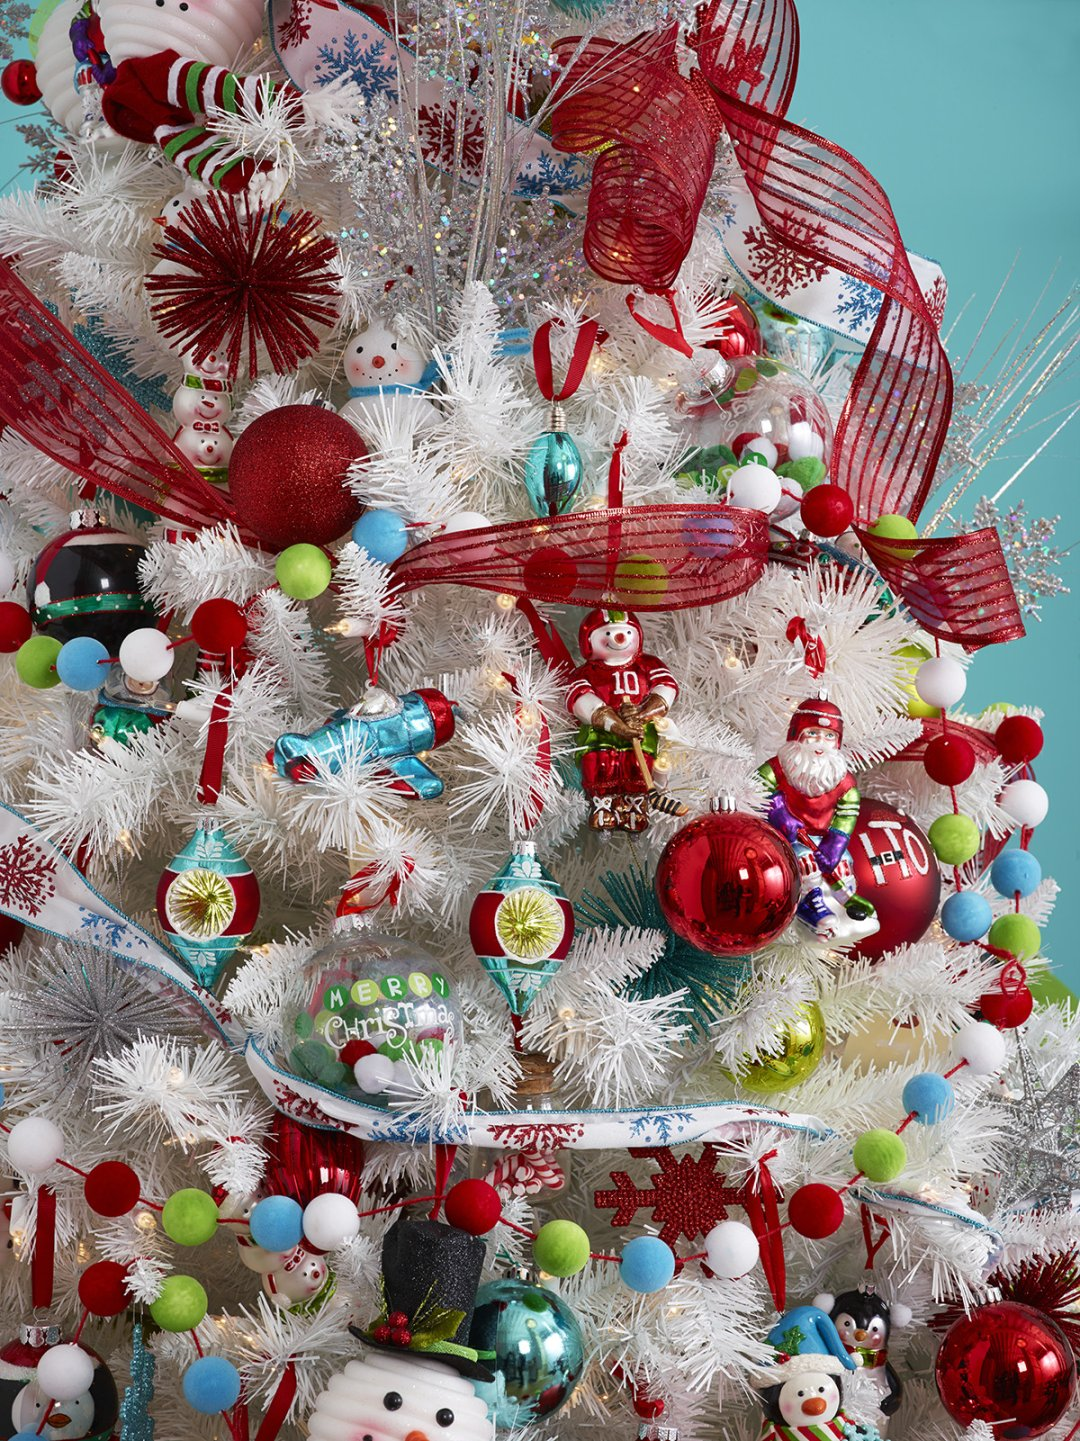 Christmas Decorations Theme 4 christmas decoration themes: sweet noel | lowe's canada